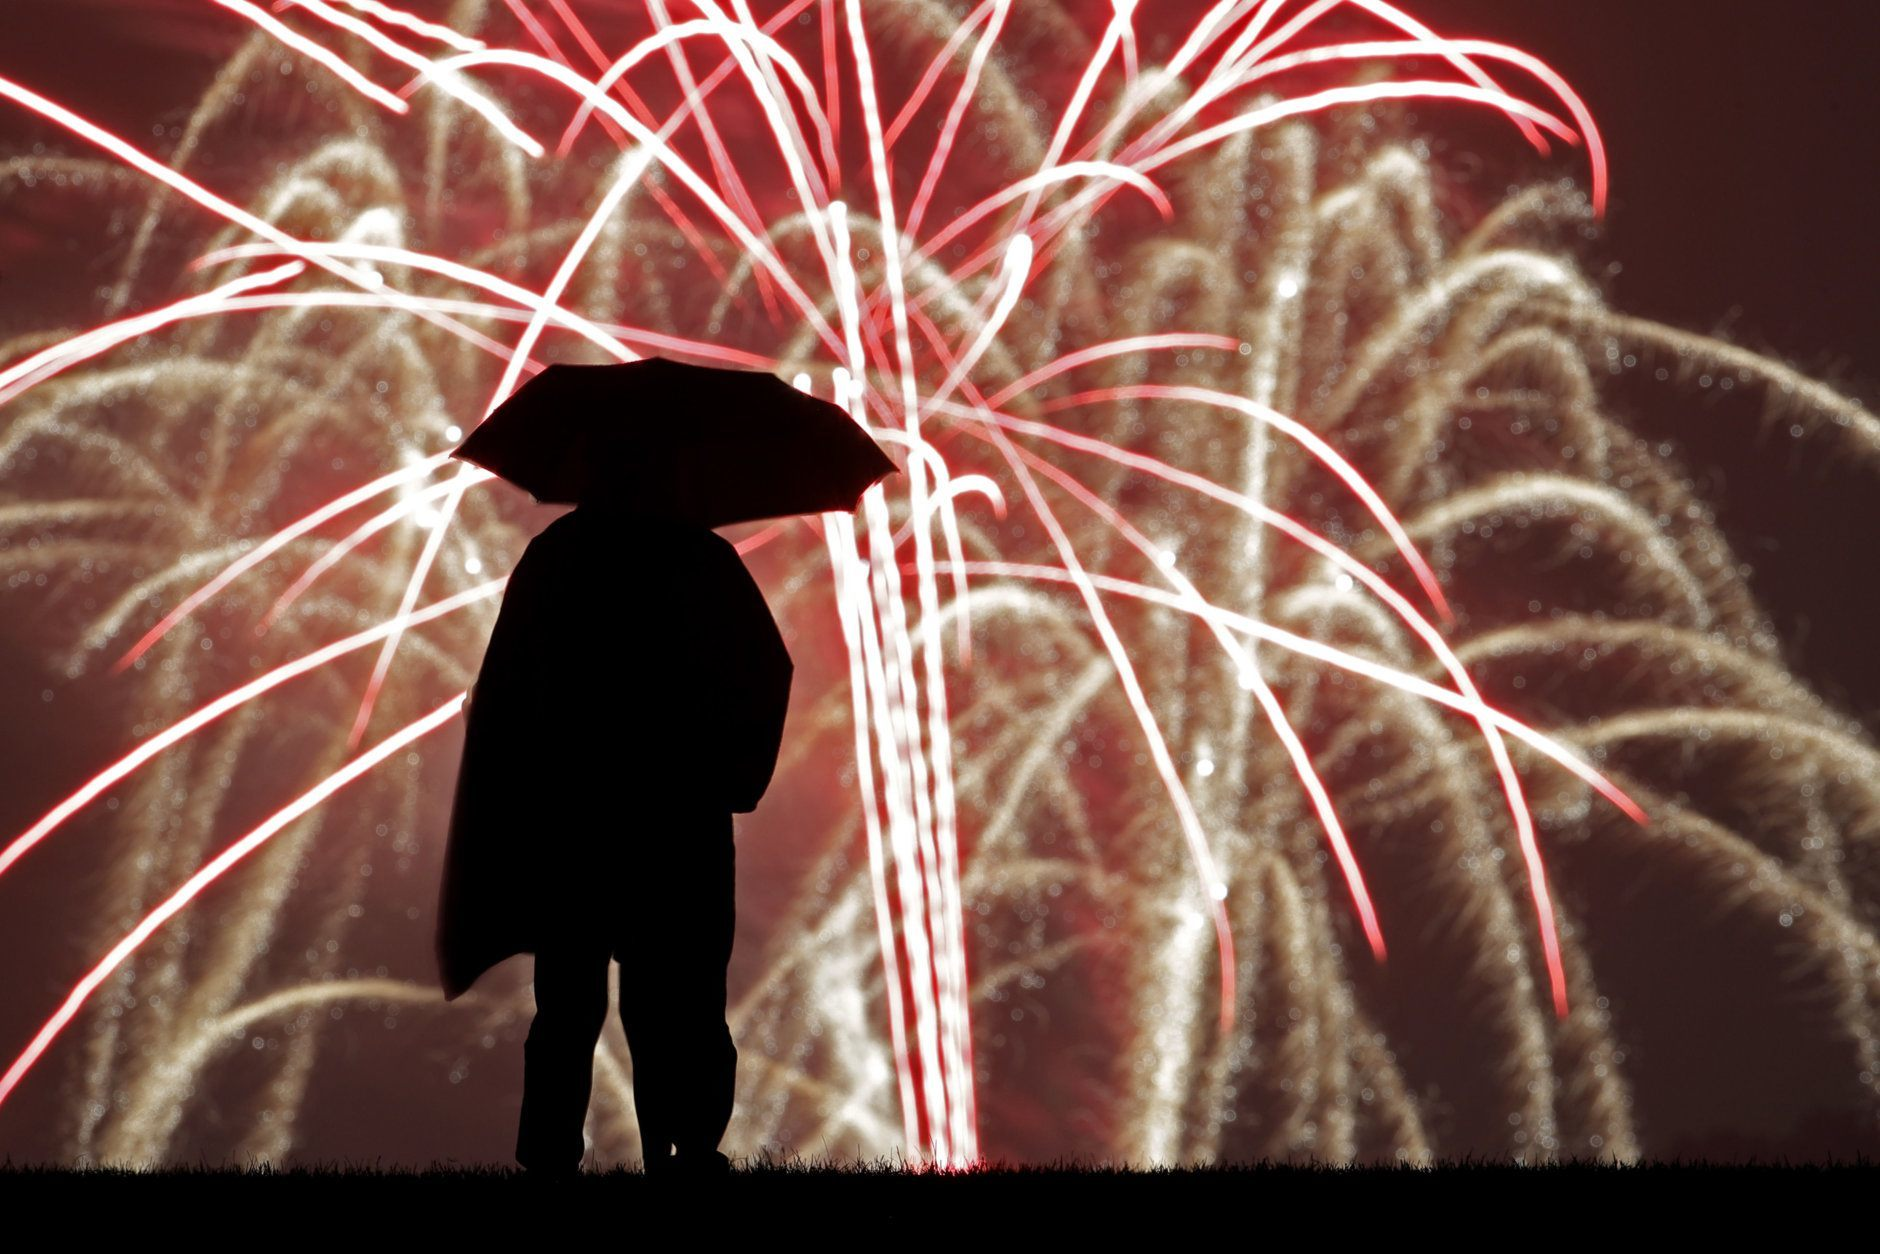 A person watches Independence Day fireworks celebrations from the Liberty Memorial Thursday, July 4, 2019, in Kansas City, Mo. (AP Photo/Charlie Riedel)